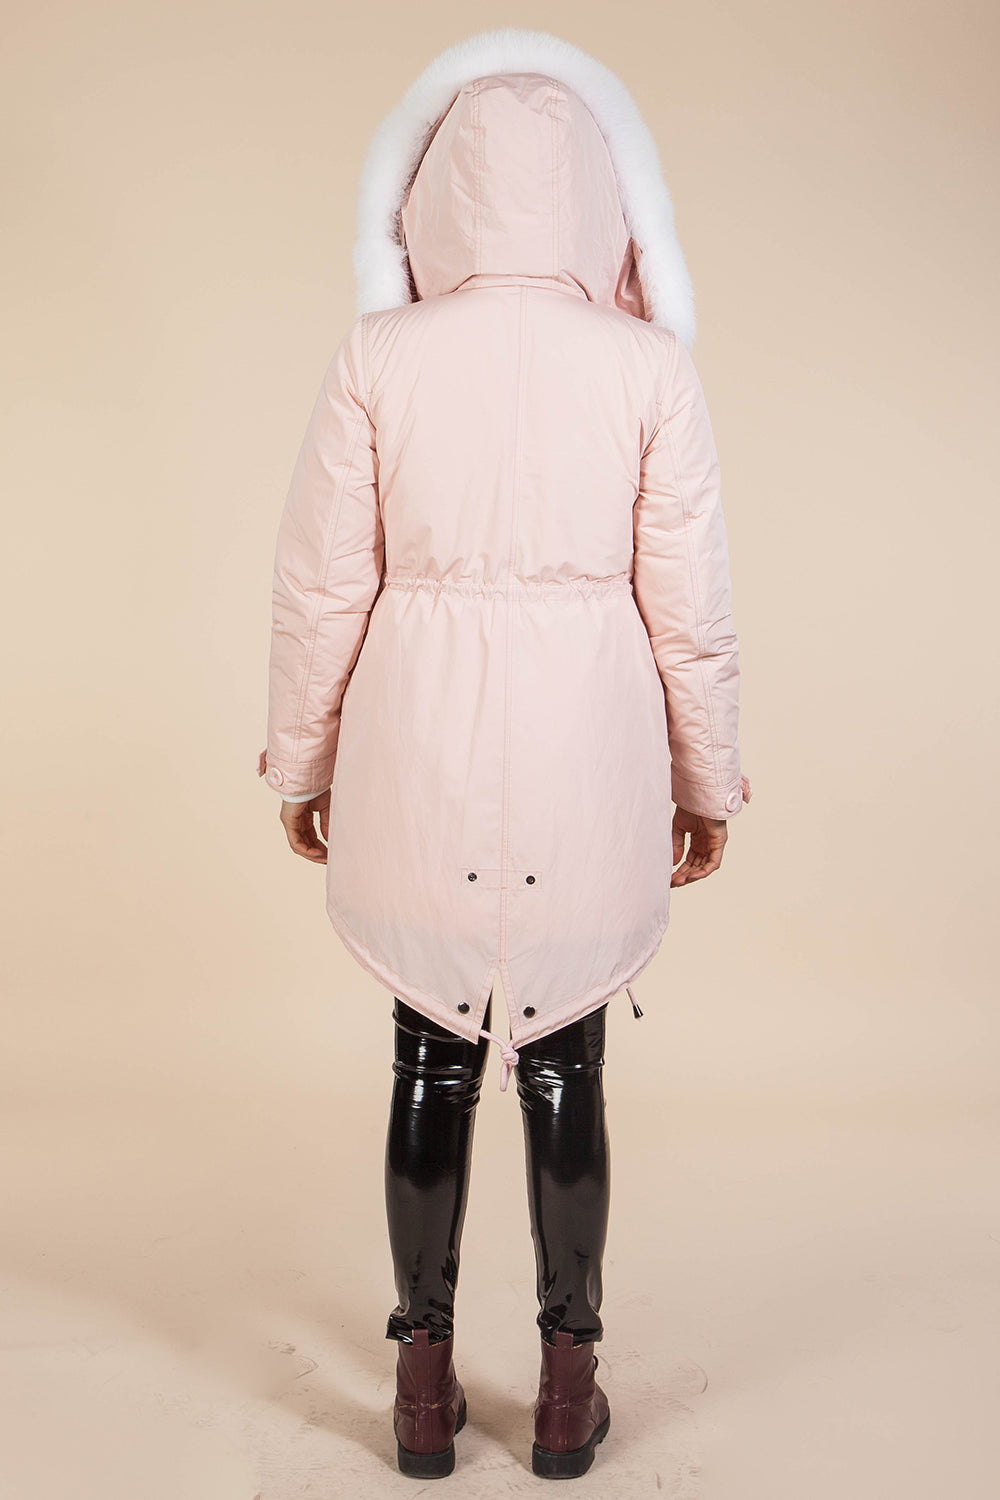 Pink Midi Parka Main Fabric is Waterproof / Raincoat Fabric With Blue Shadow Fox